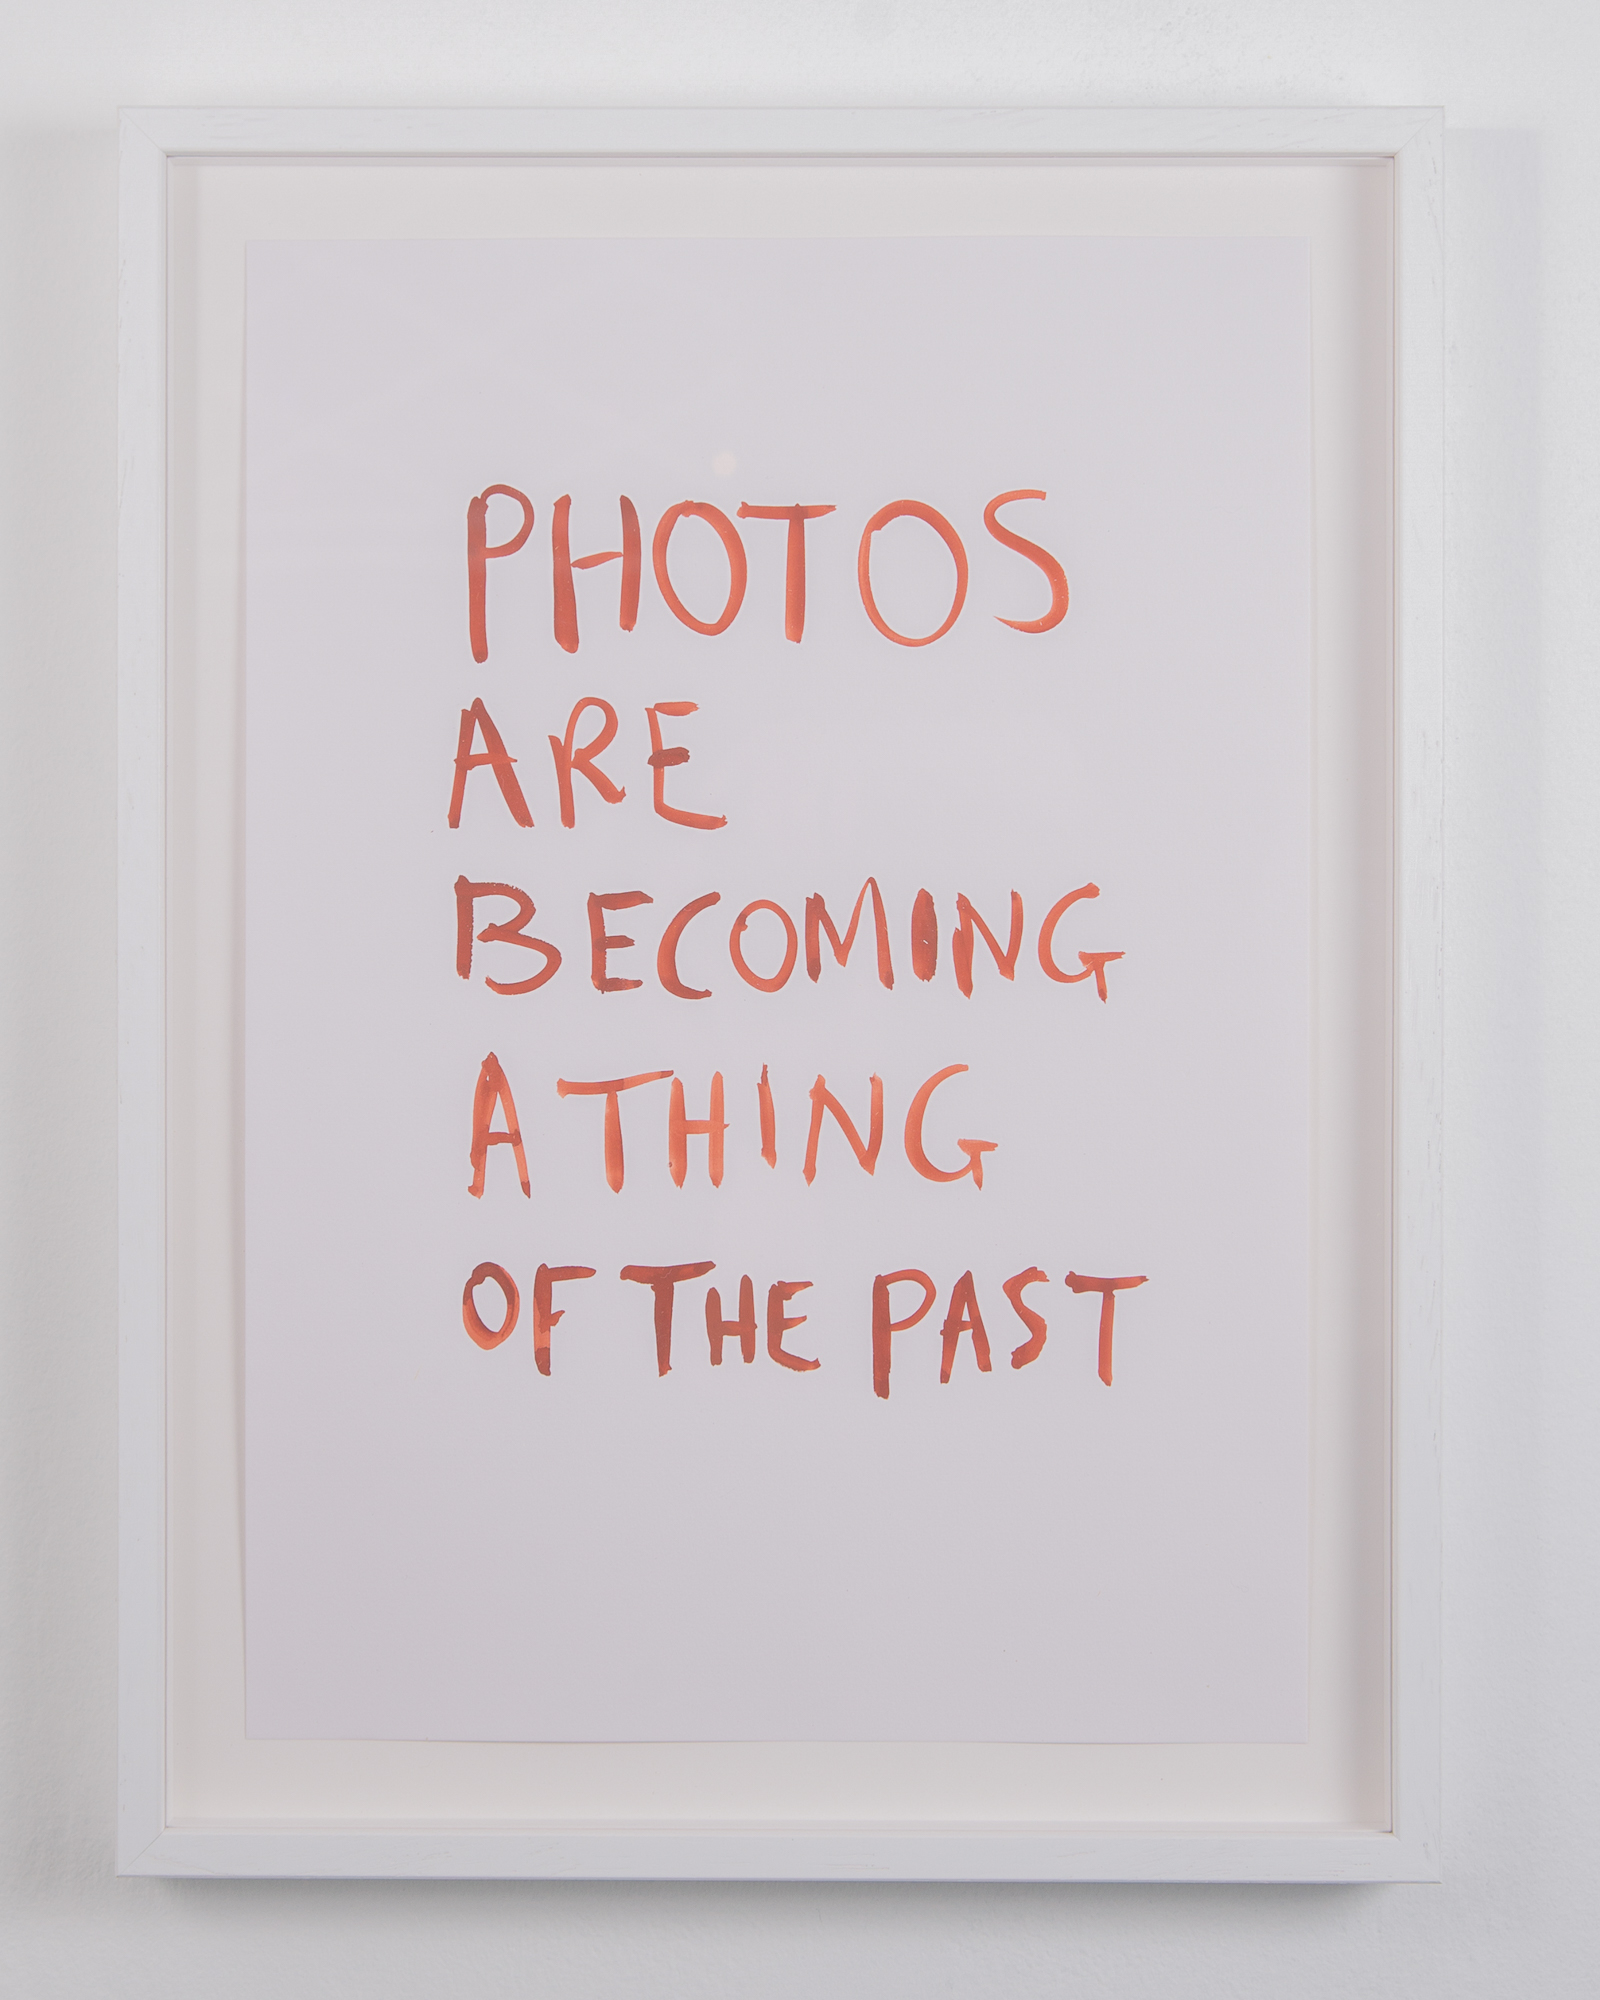 Tim Etchells, A Thing of the Past, 2020. Tempera on archival paper. 42 x 29.7 cm.